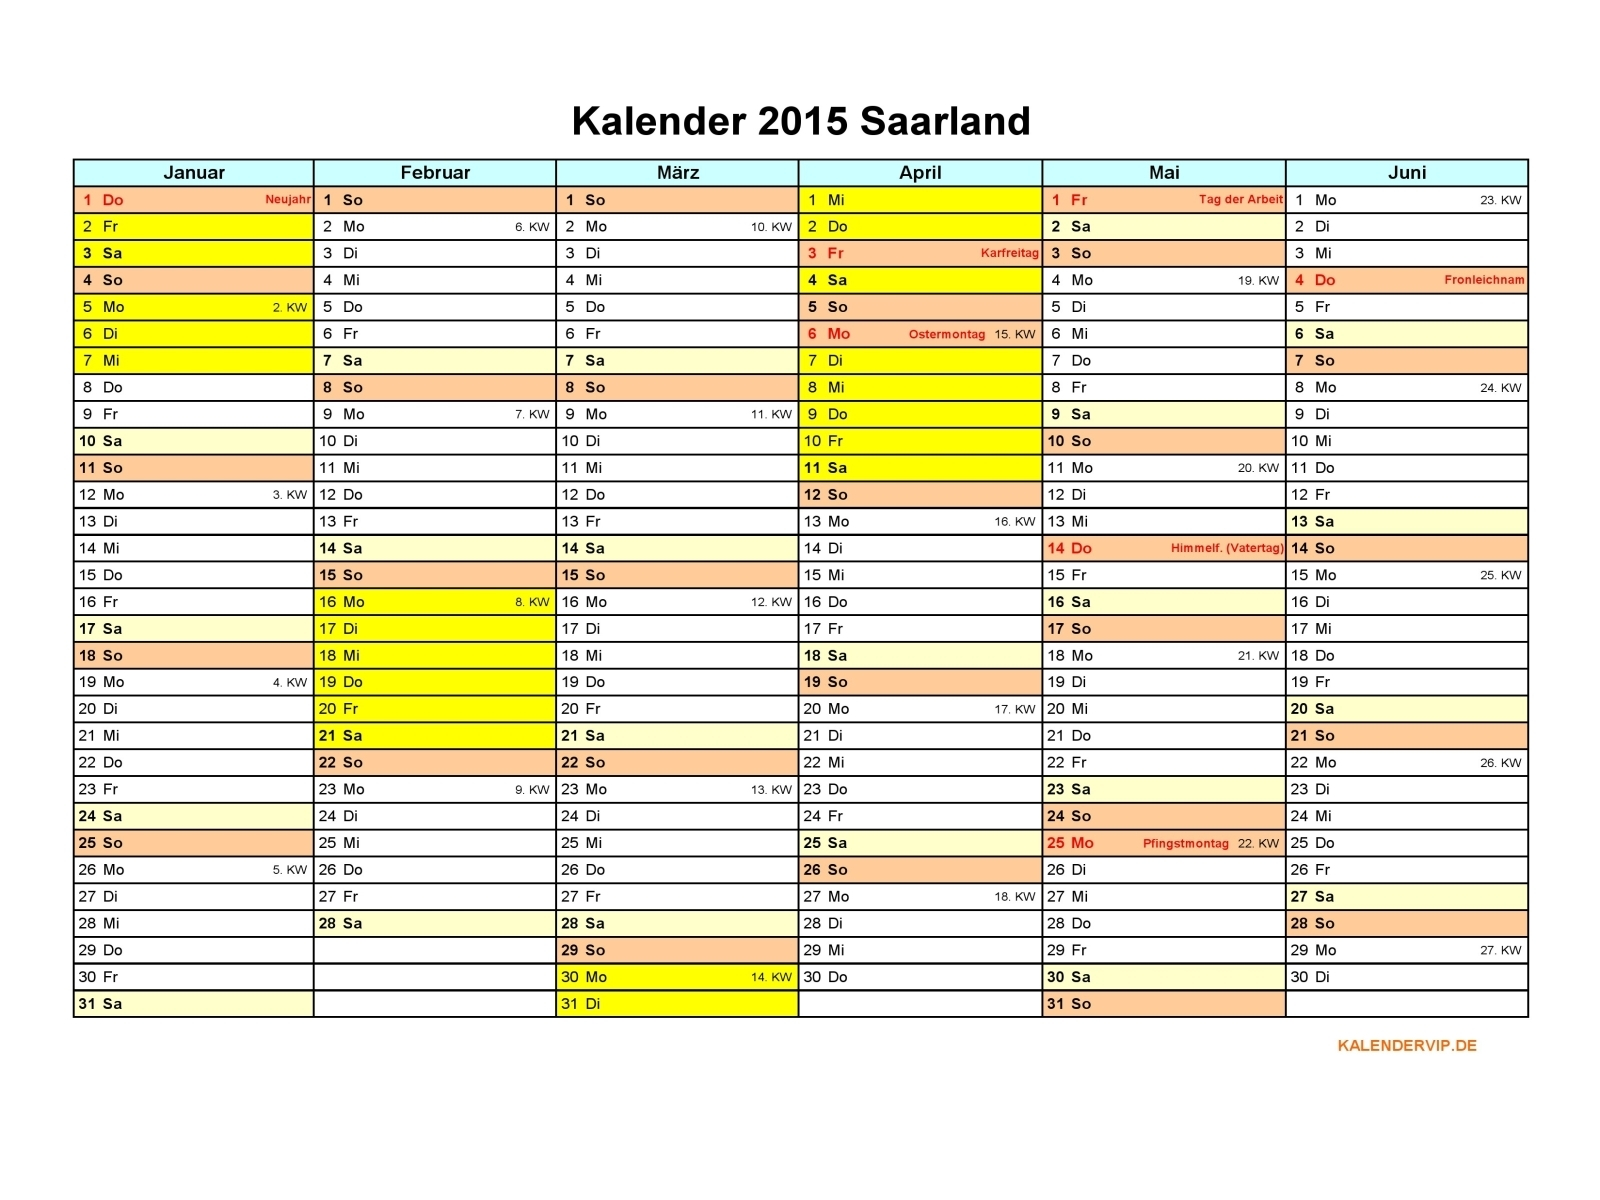 word kalender schulferien hamburg 2015 new calendar template site. Black Bedroom Furniture Sets. Home Design Ideas